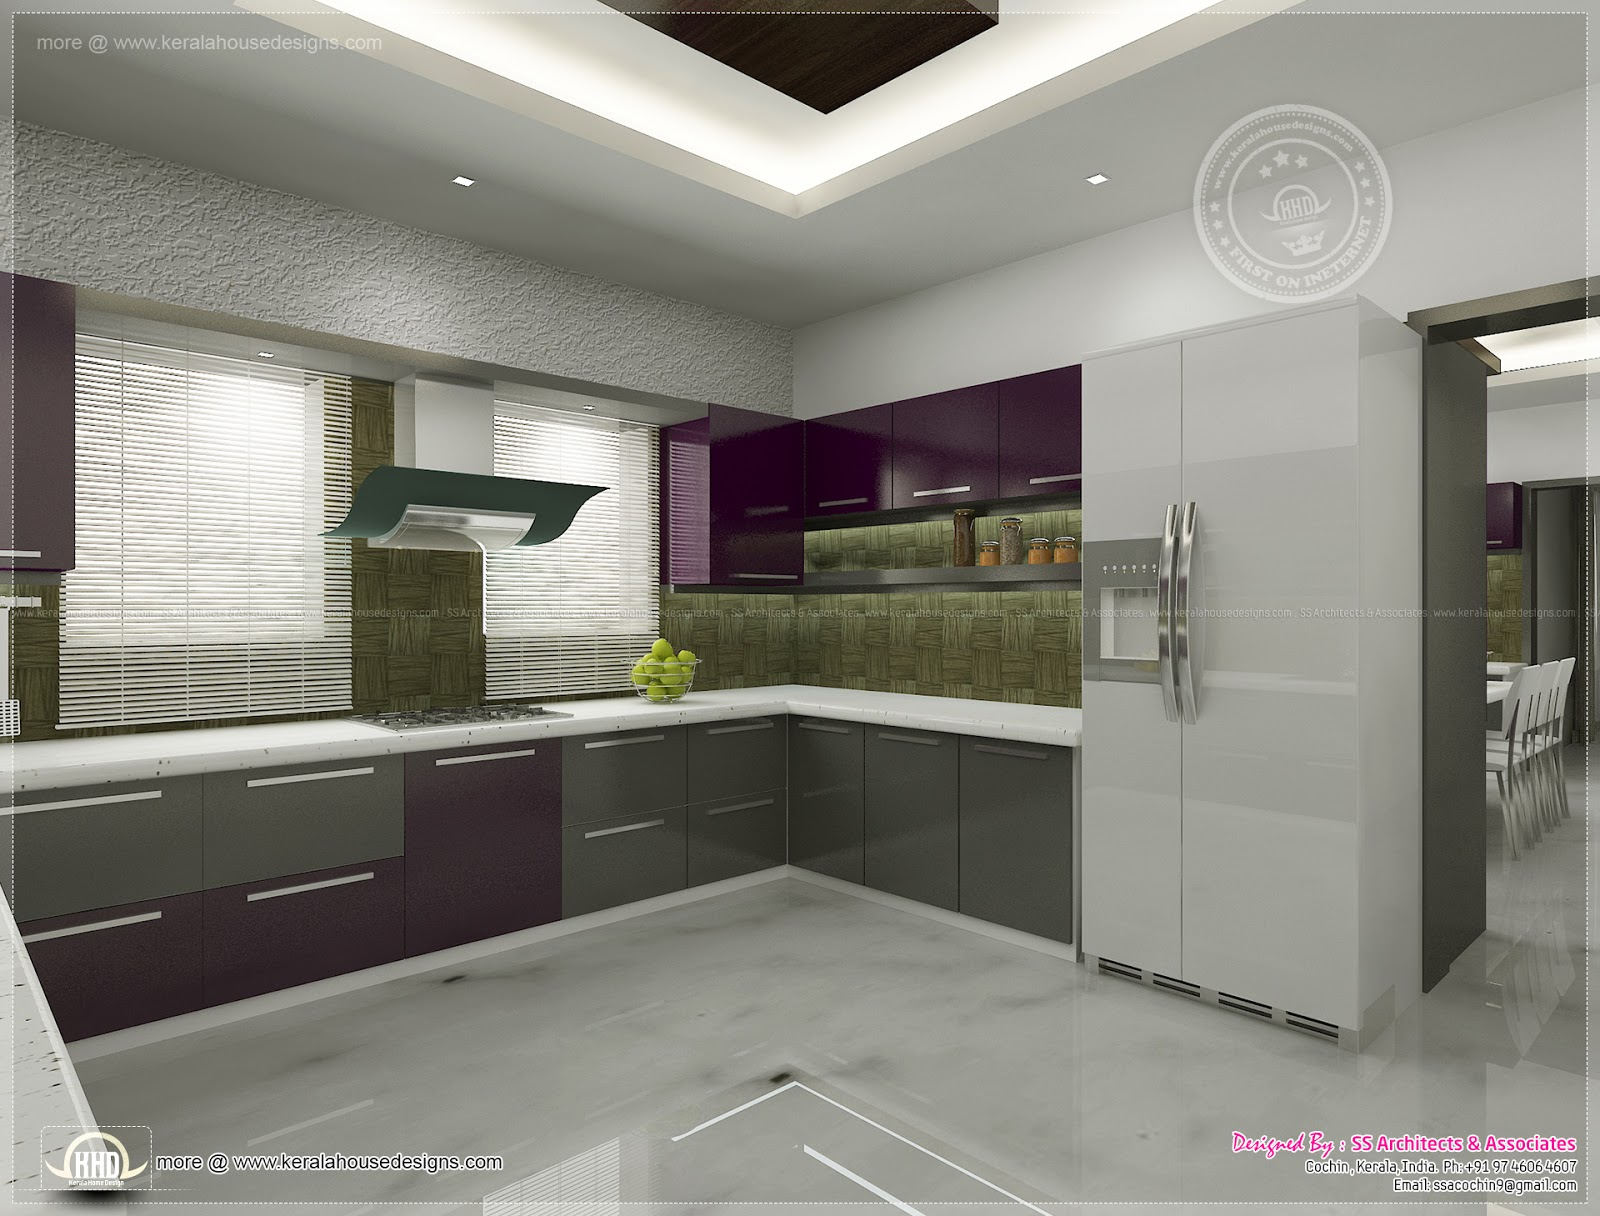 Kitchen interior views by ss architects cochin kerala home design and floor plans - Interior design for kitchen ...